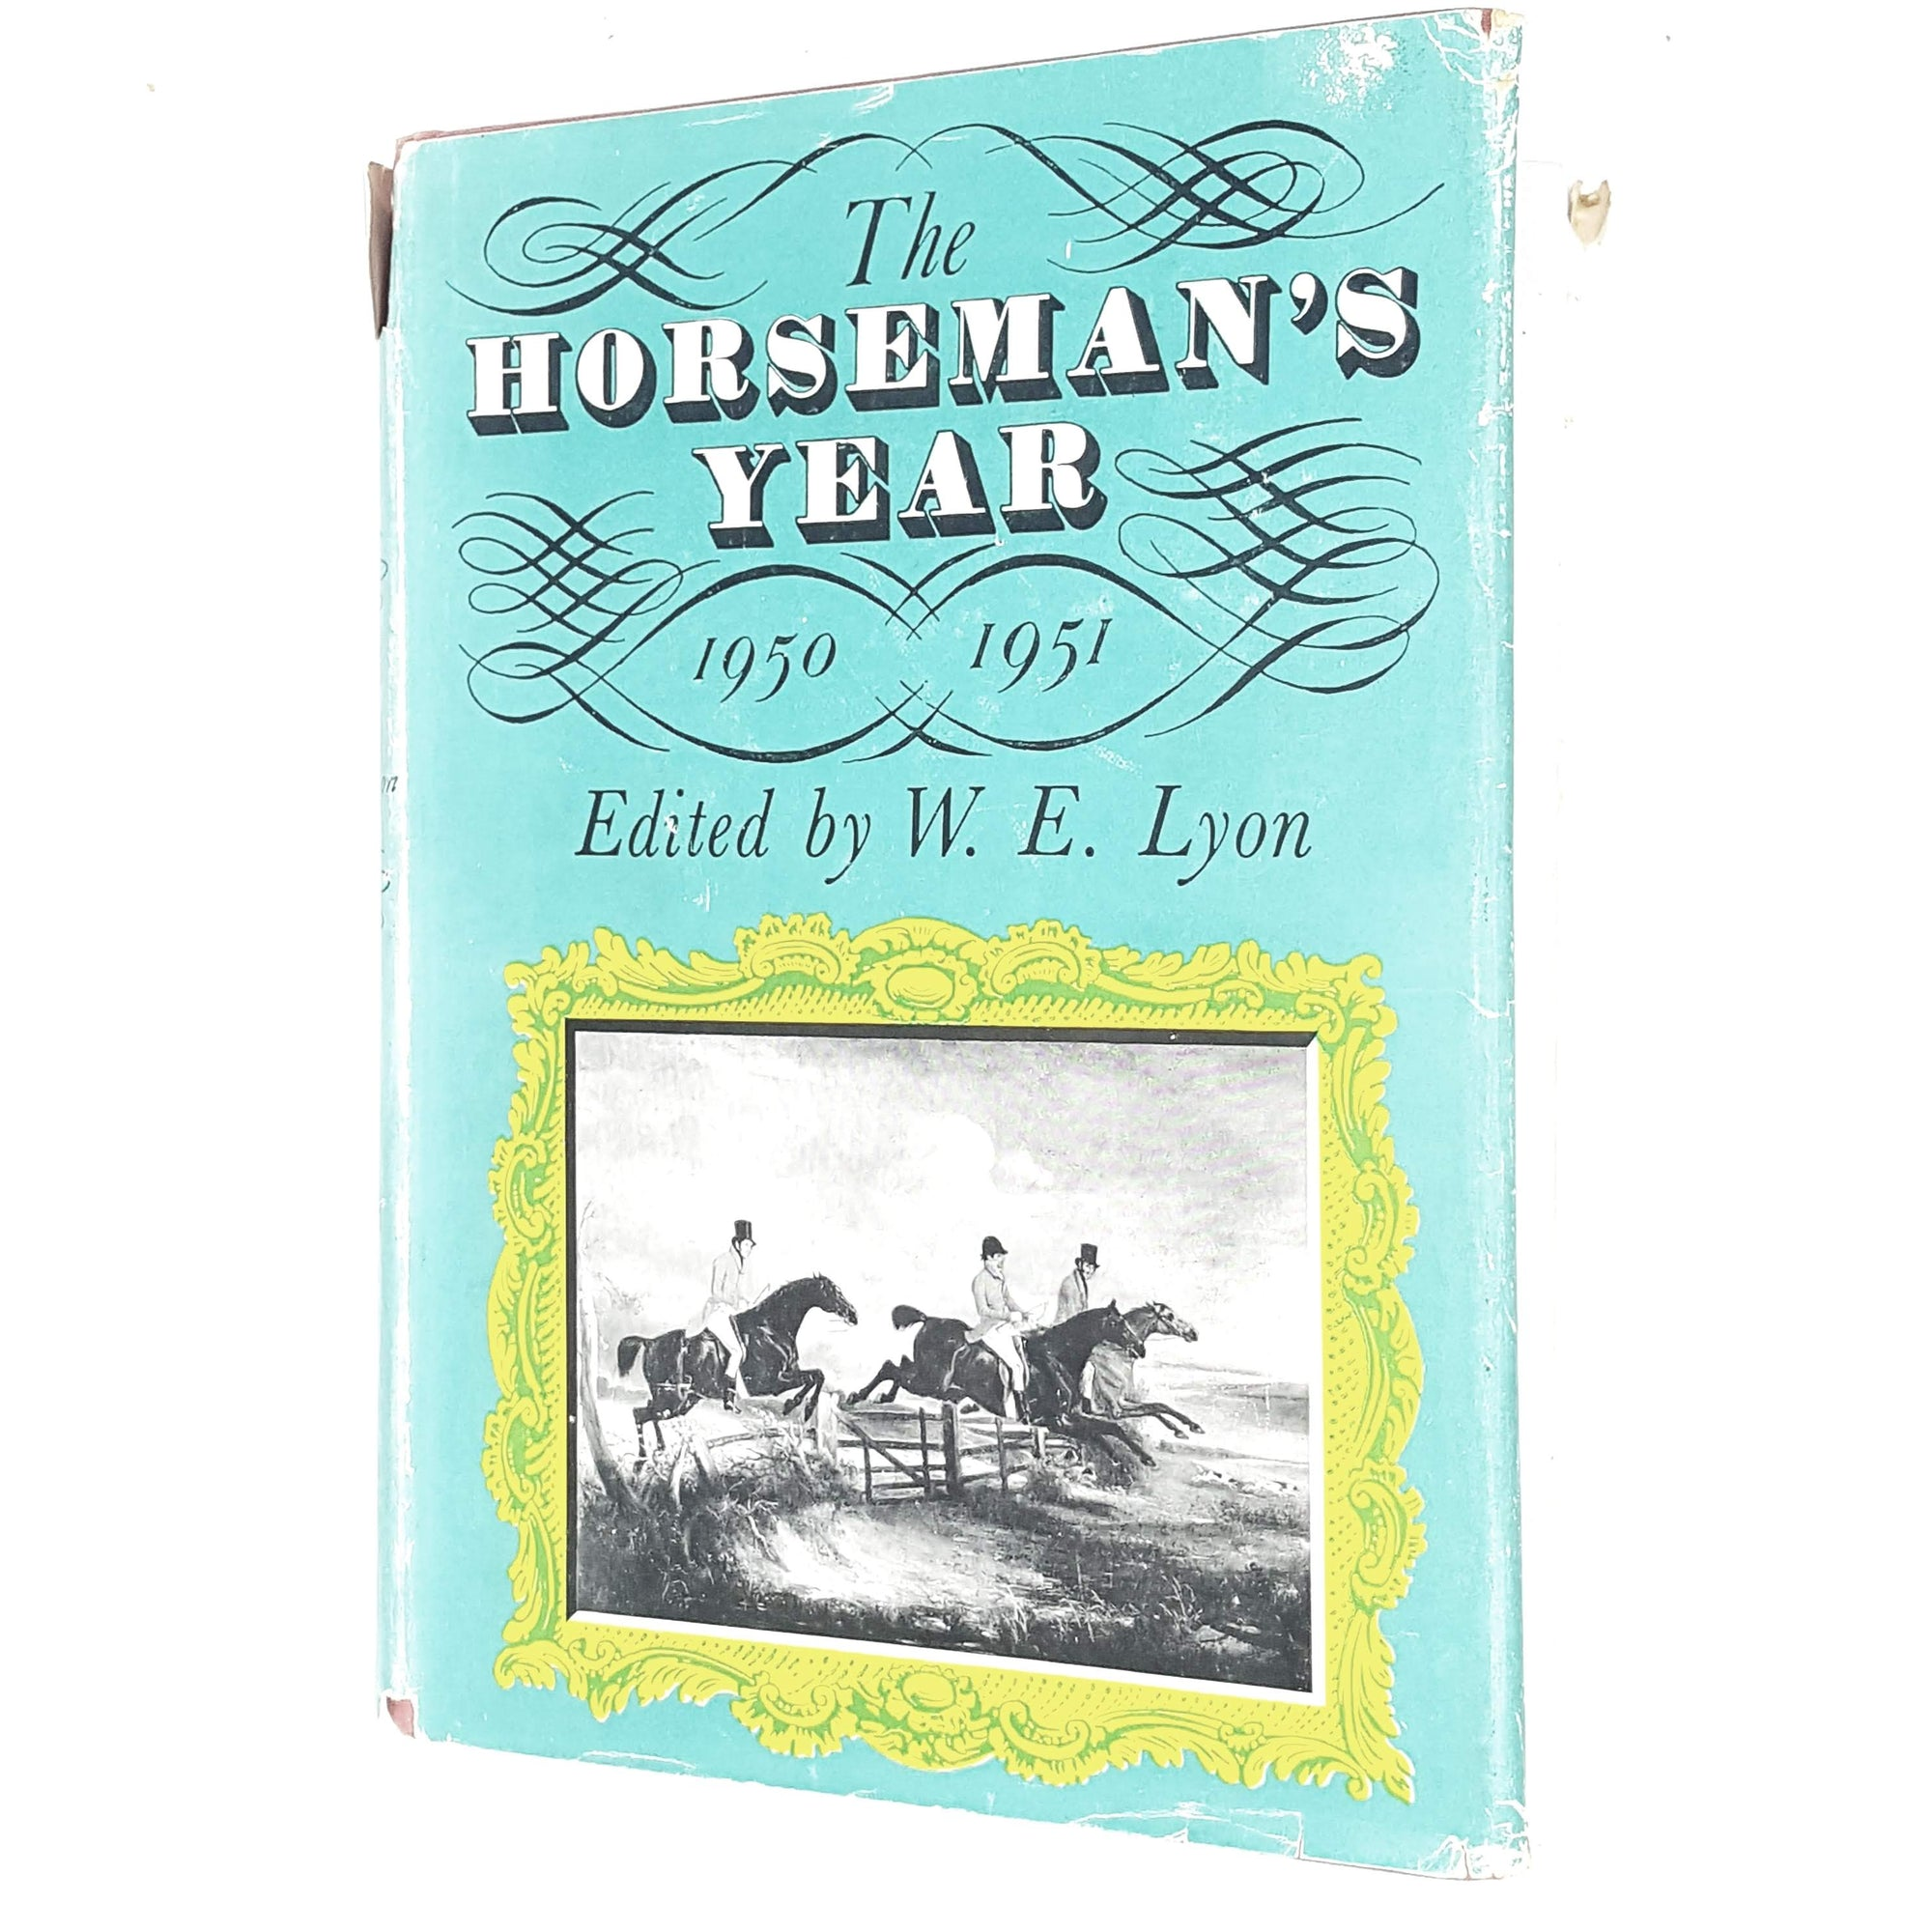 Illustrated The Horseman's Year 1950 - 1951